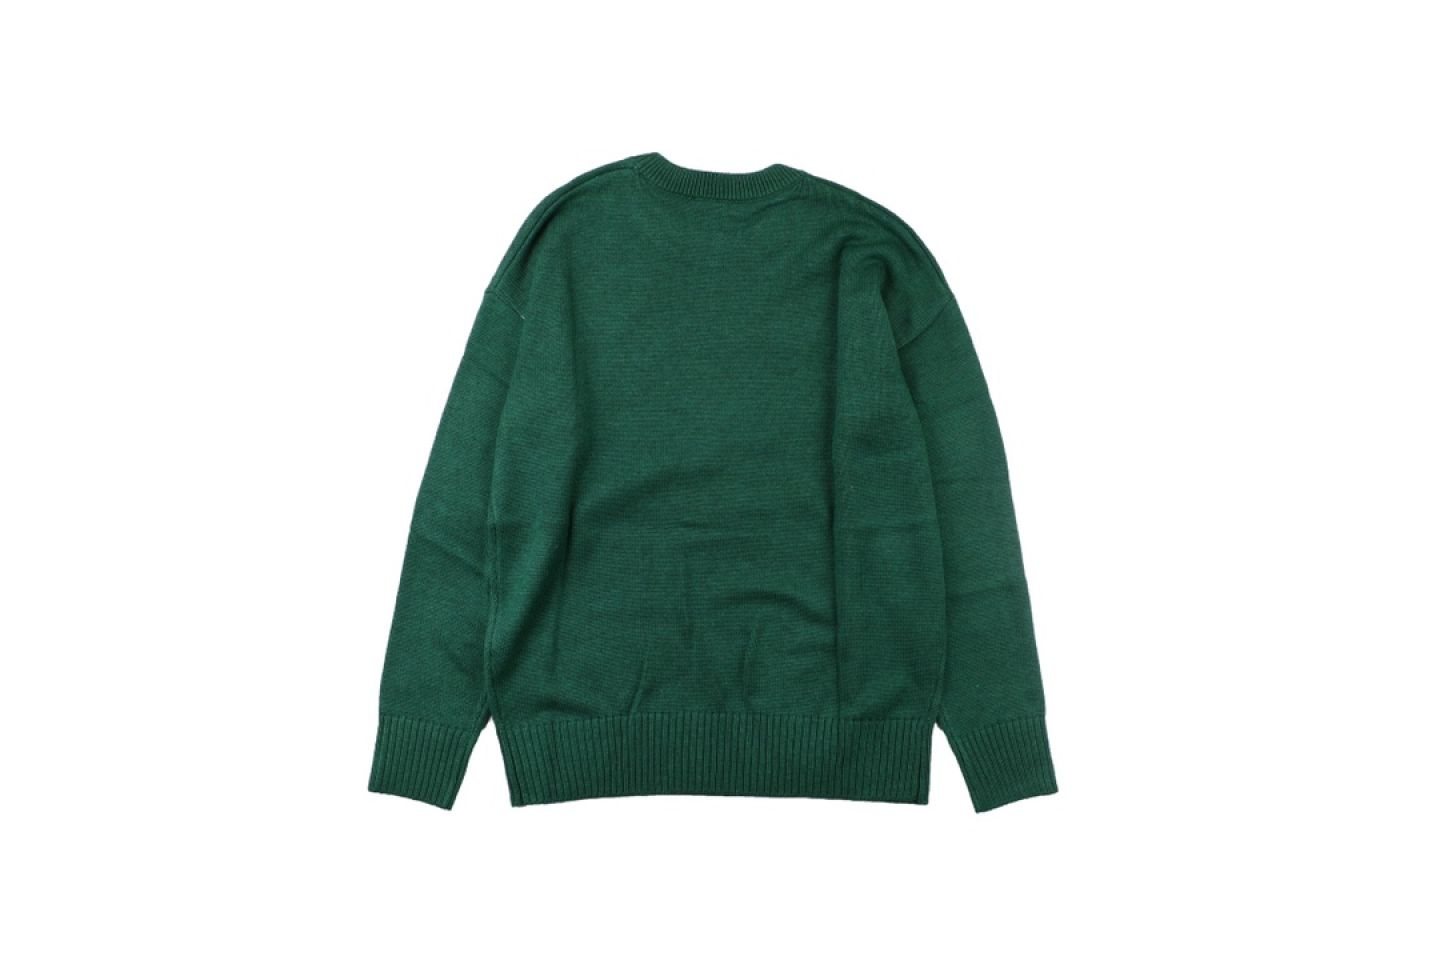 "Shirt Ami heart round neck wool sweater ""Green"" 5 5"